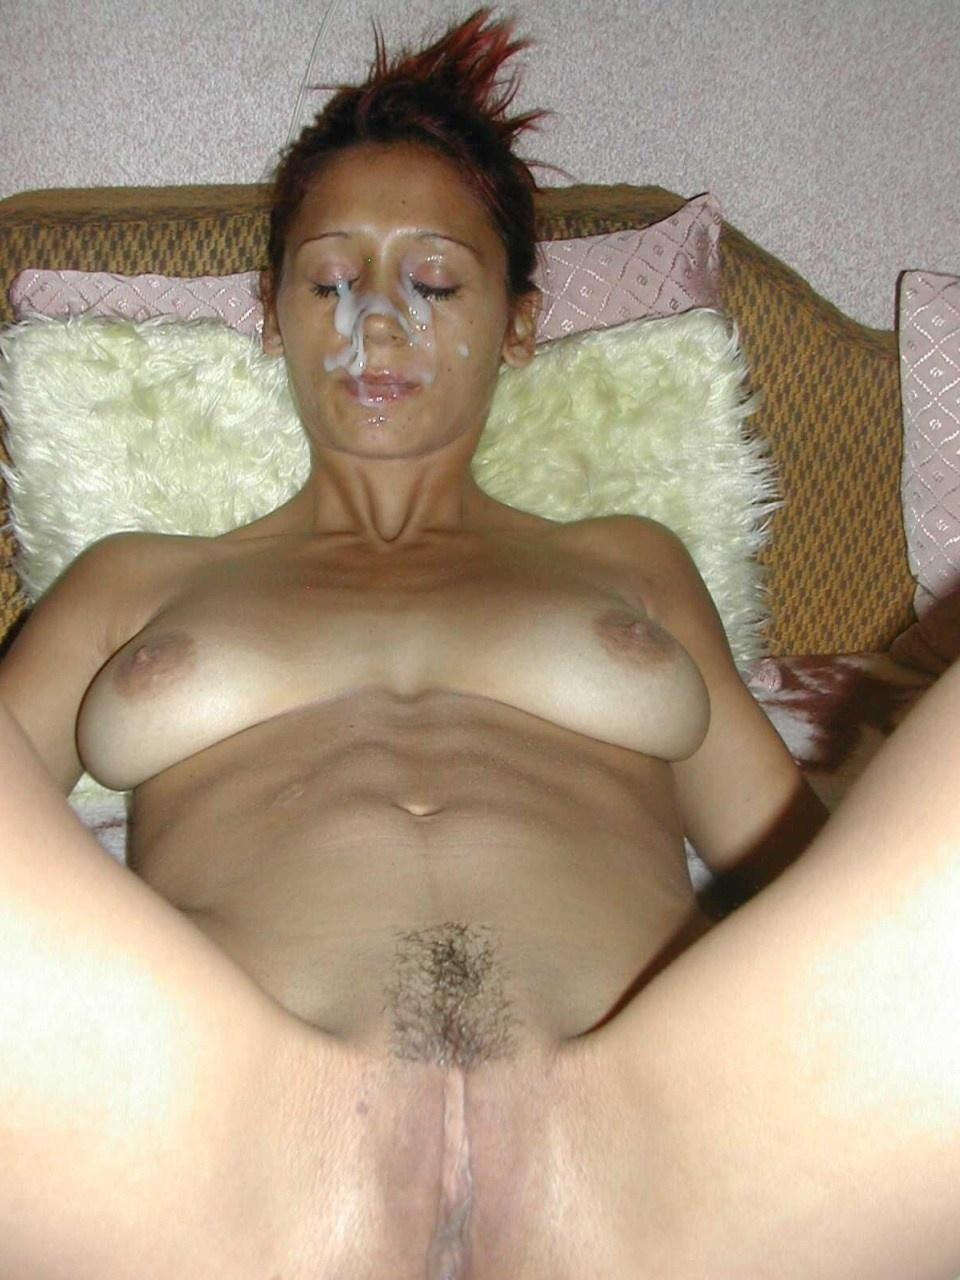 Adult facial fantastic site